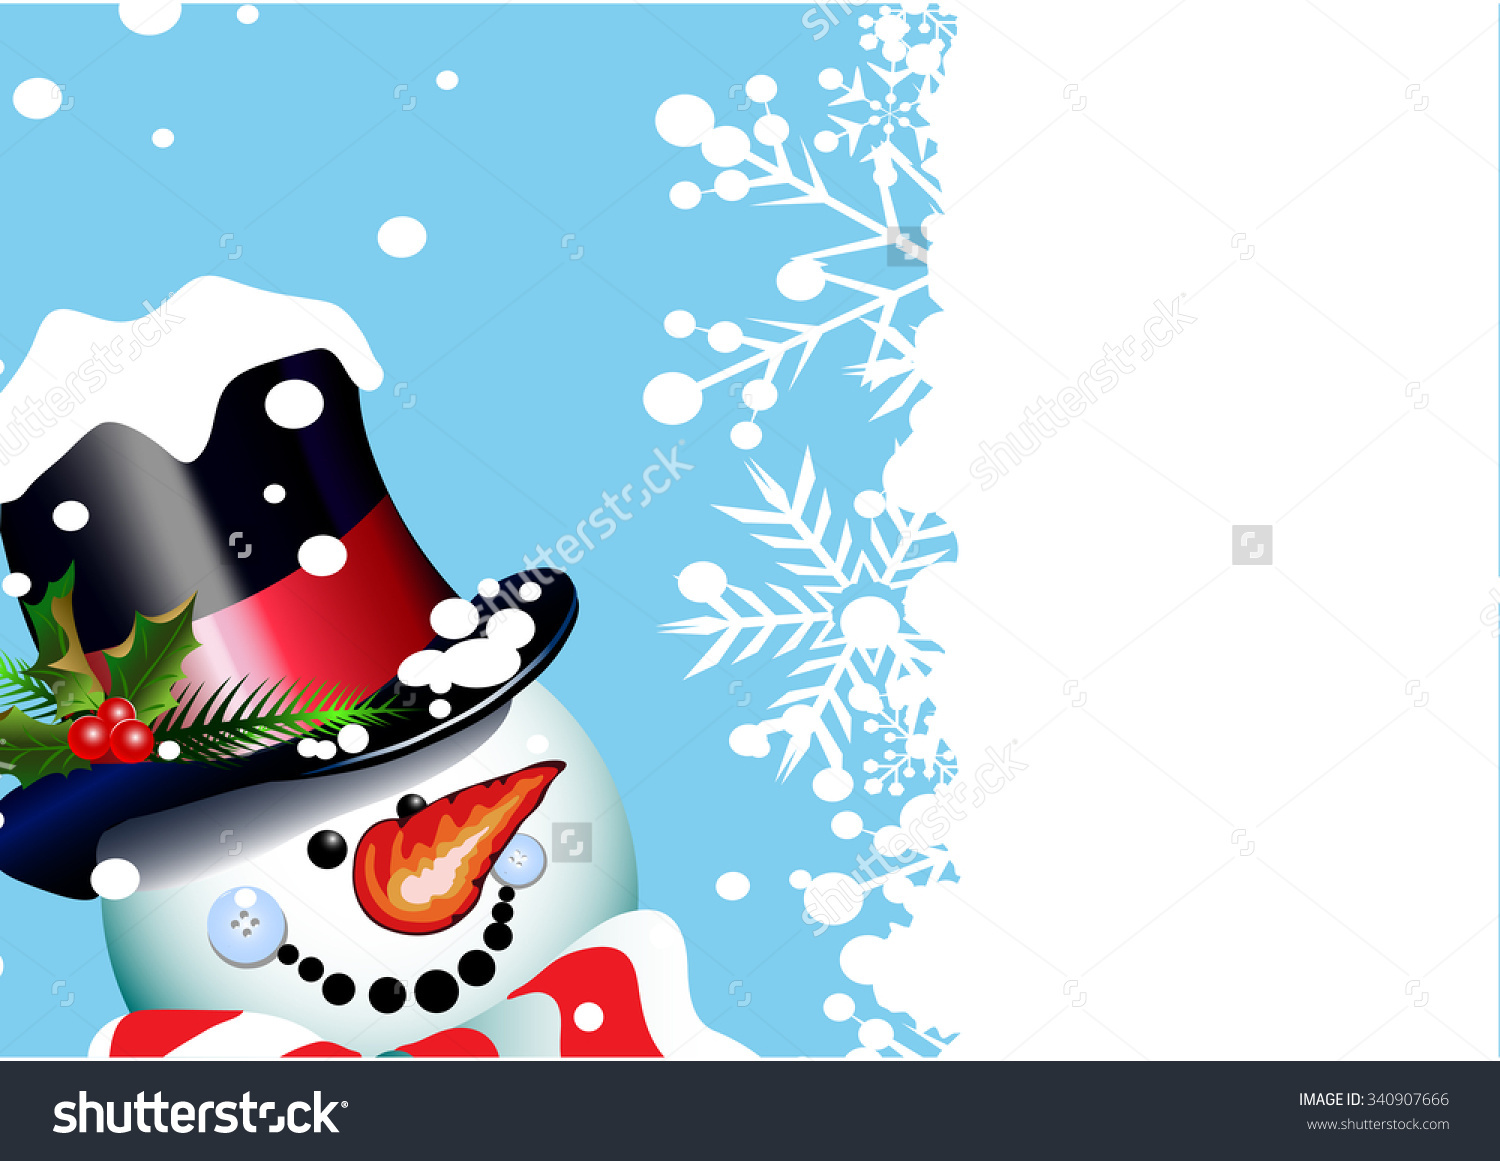 Snowman Christmas Card Christmas Card Vector Christmas Card Design Christmas Card Frame Christmas Card Colorful Christmas Card Border Christmas Day Christmas Snowman